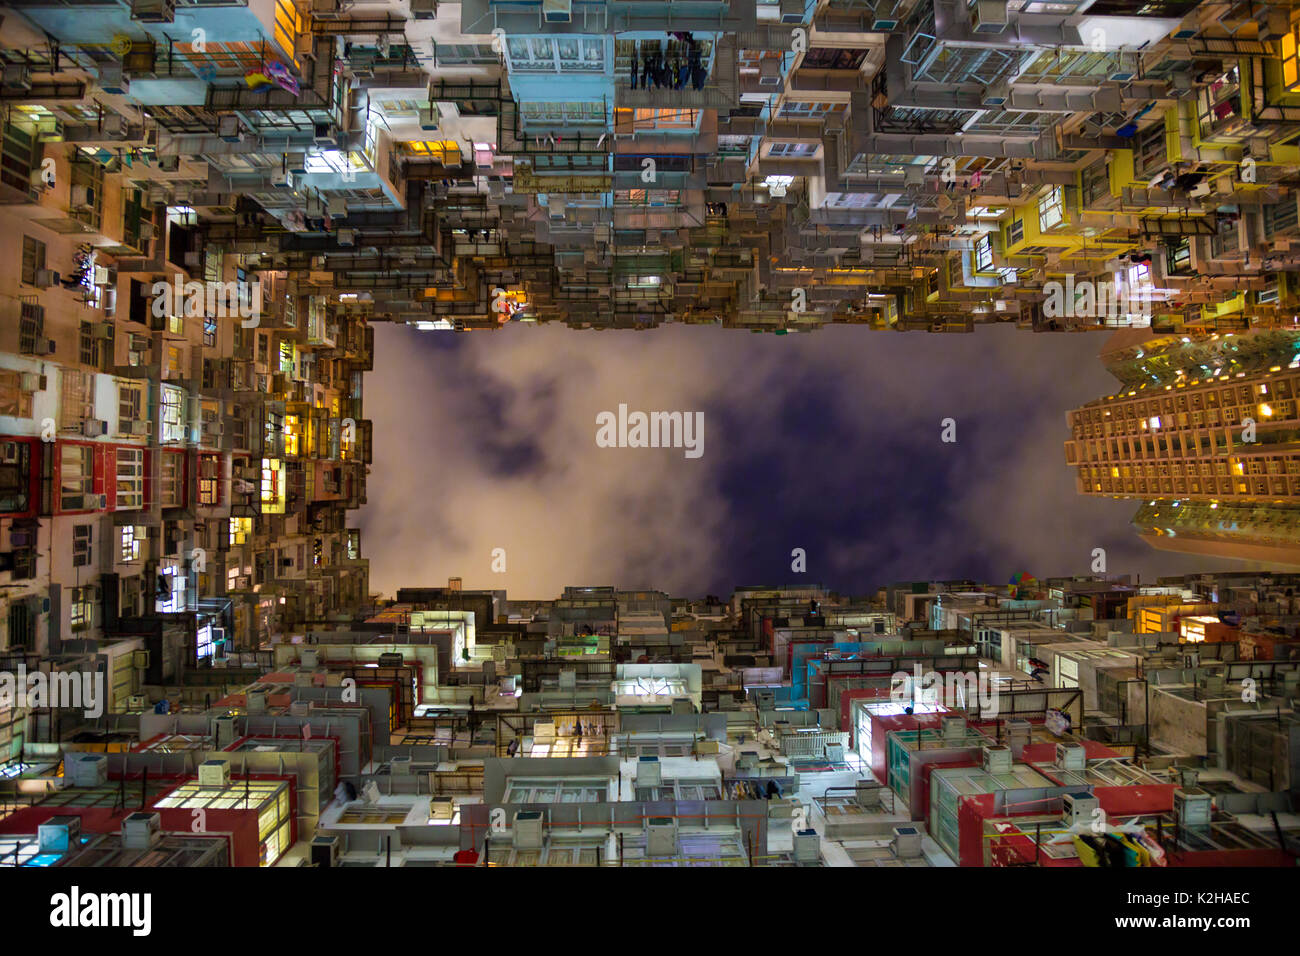 Am Abend in der Montanen Mansion, Quarry Bay, Hong Kong Stockbild